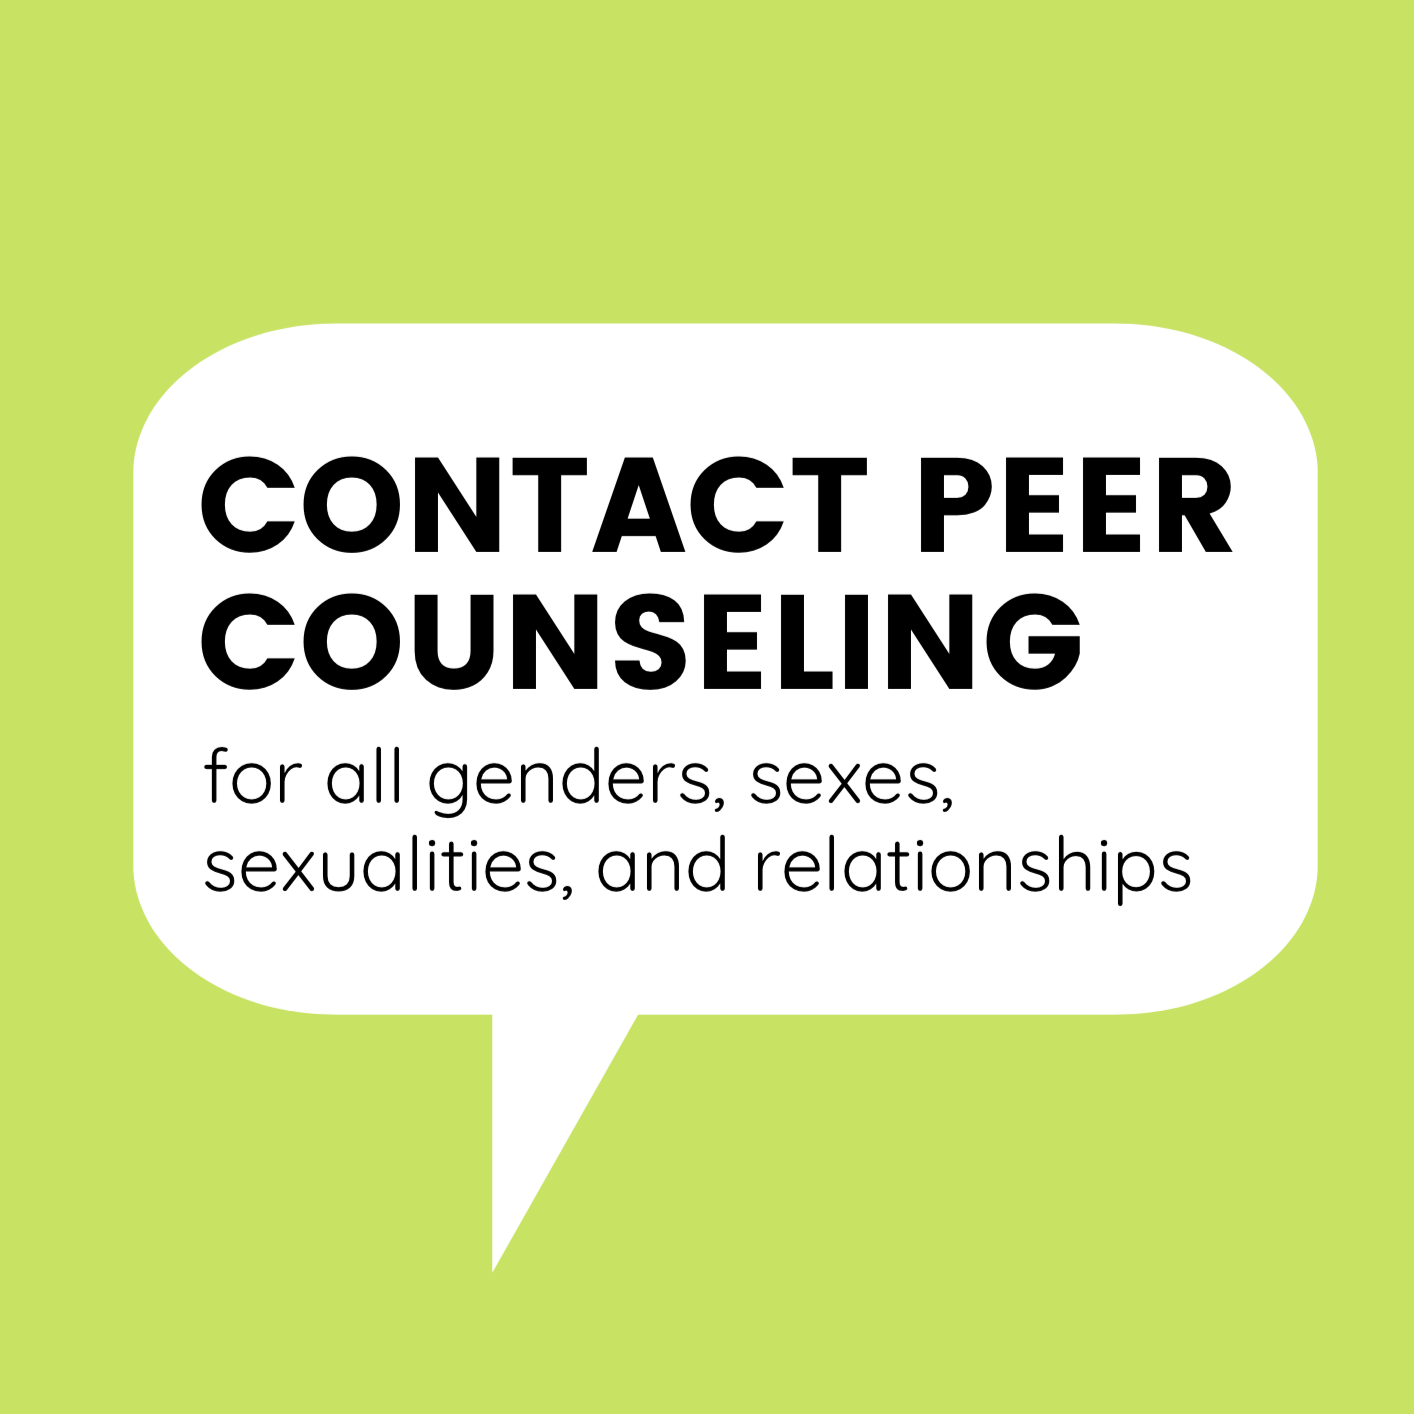 Contact Peer Counseling